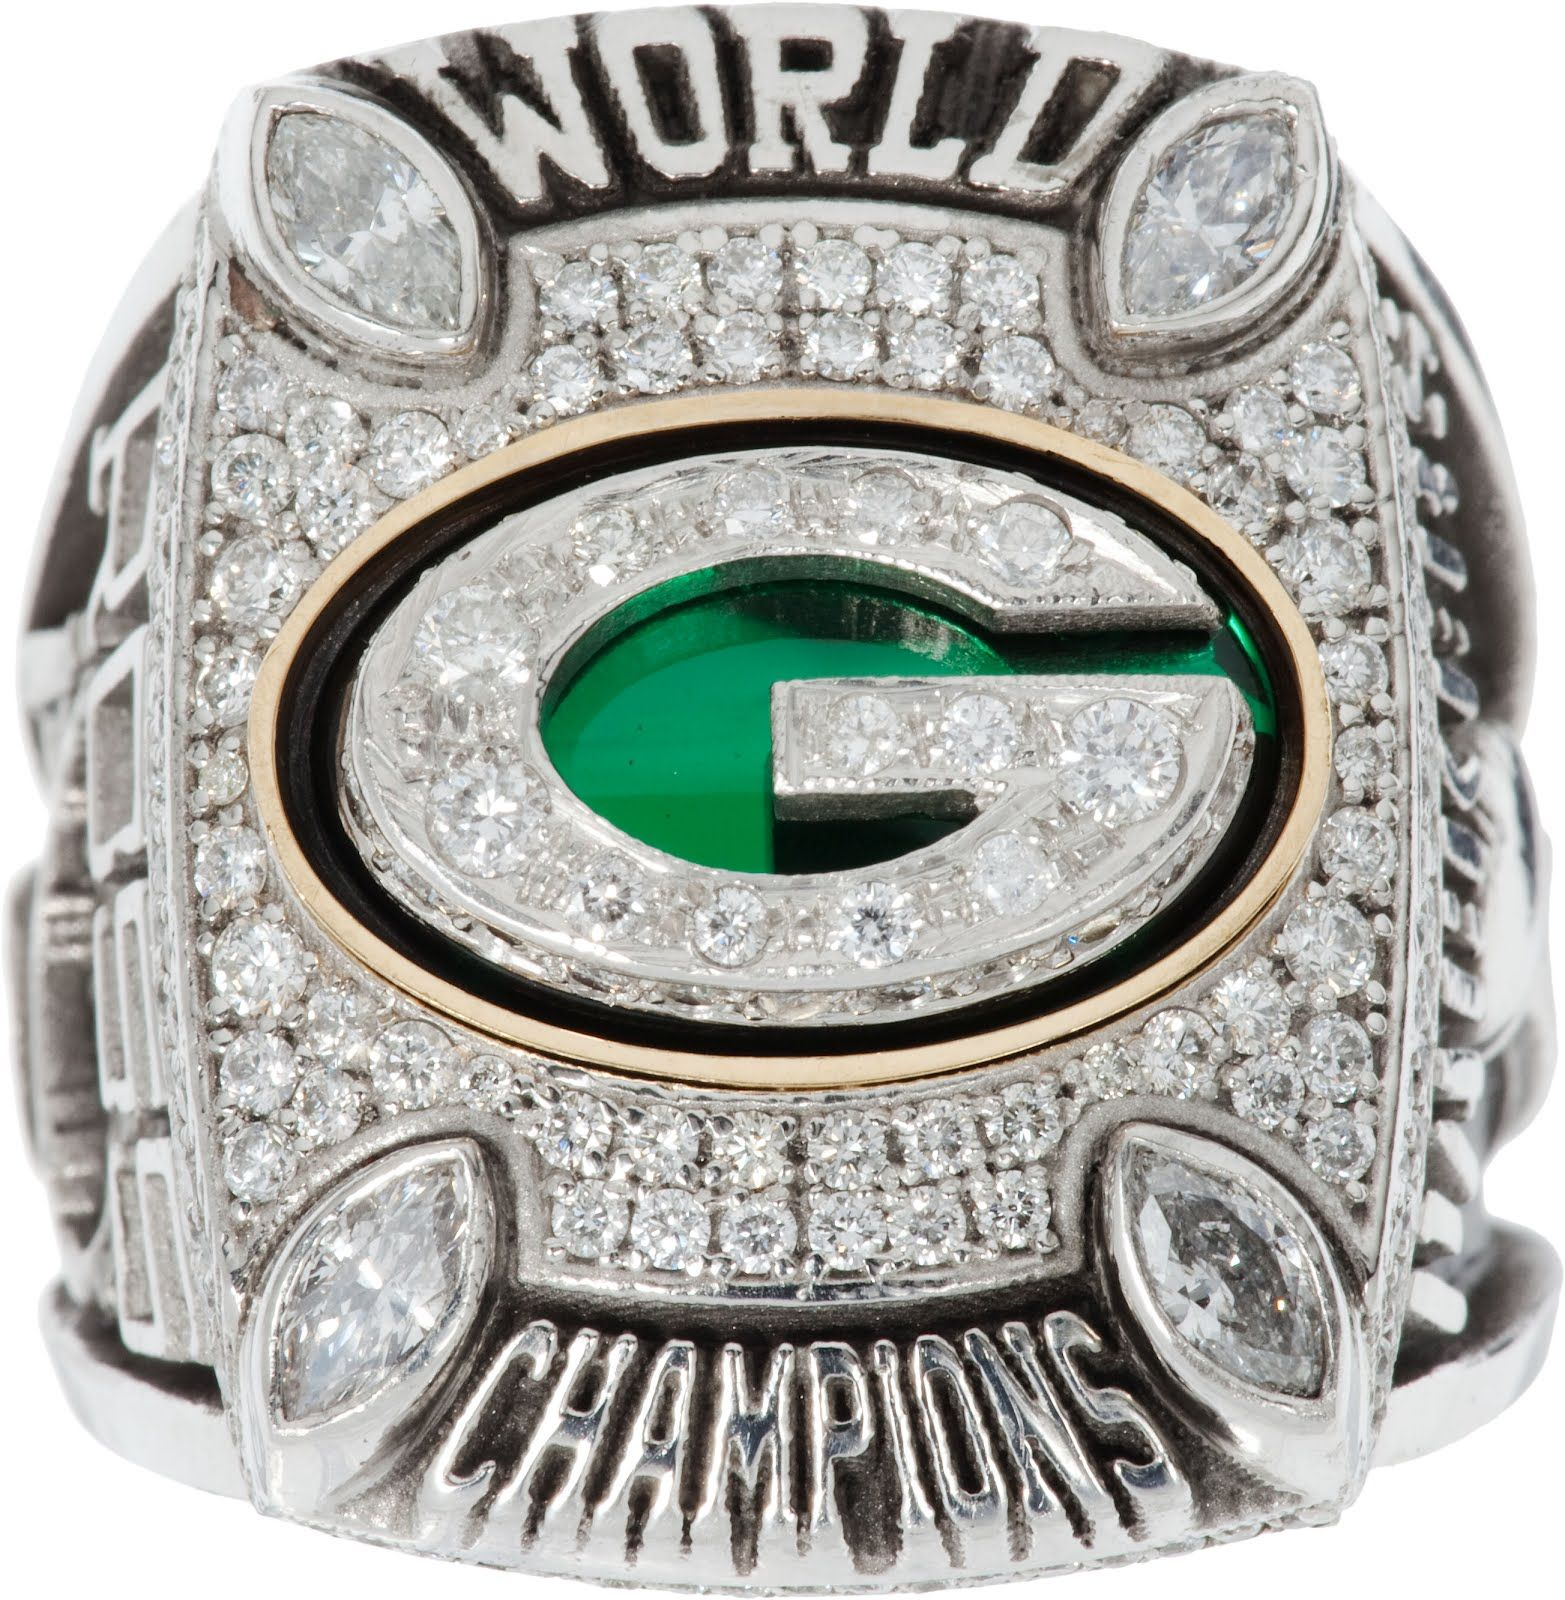 The Green Bay Packers 2011 Super Bowl Xlv World Championship Ring Packers Super Bowl Super Bowl Rings Green Bay Packers Fans